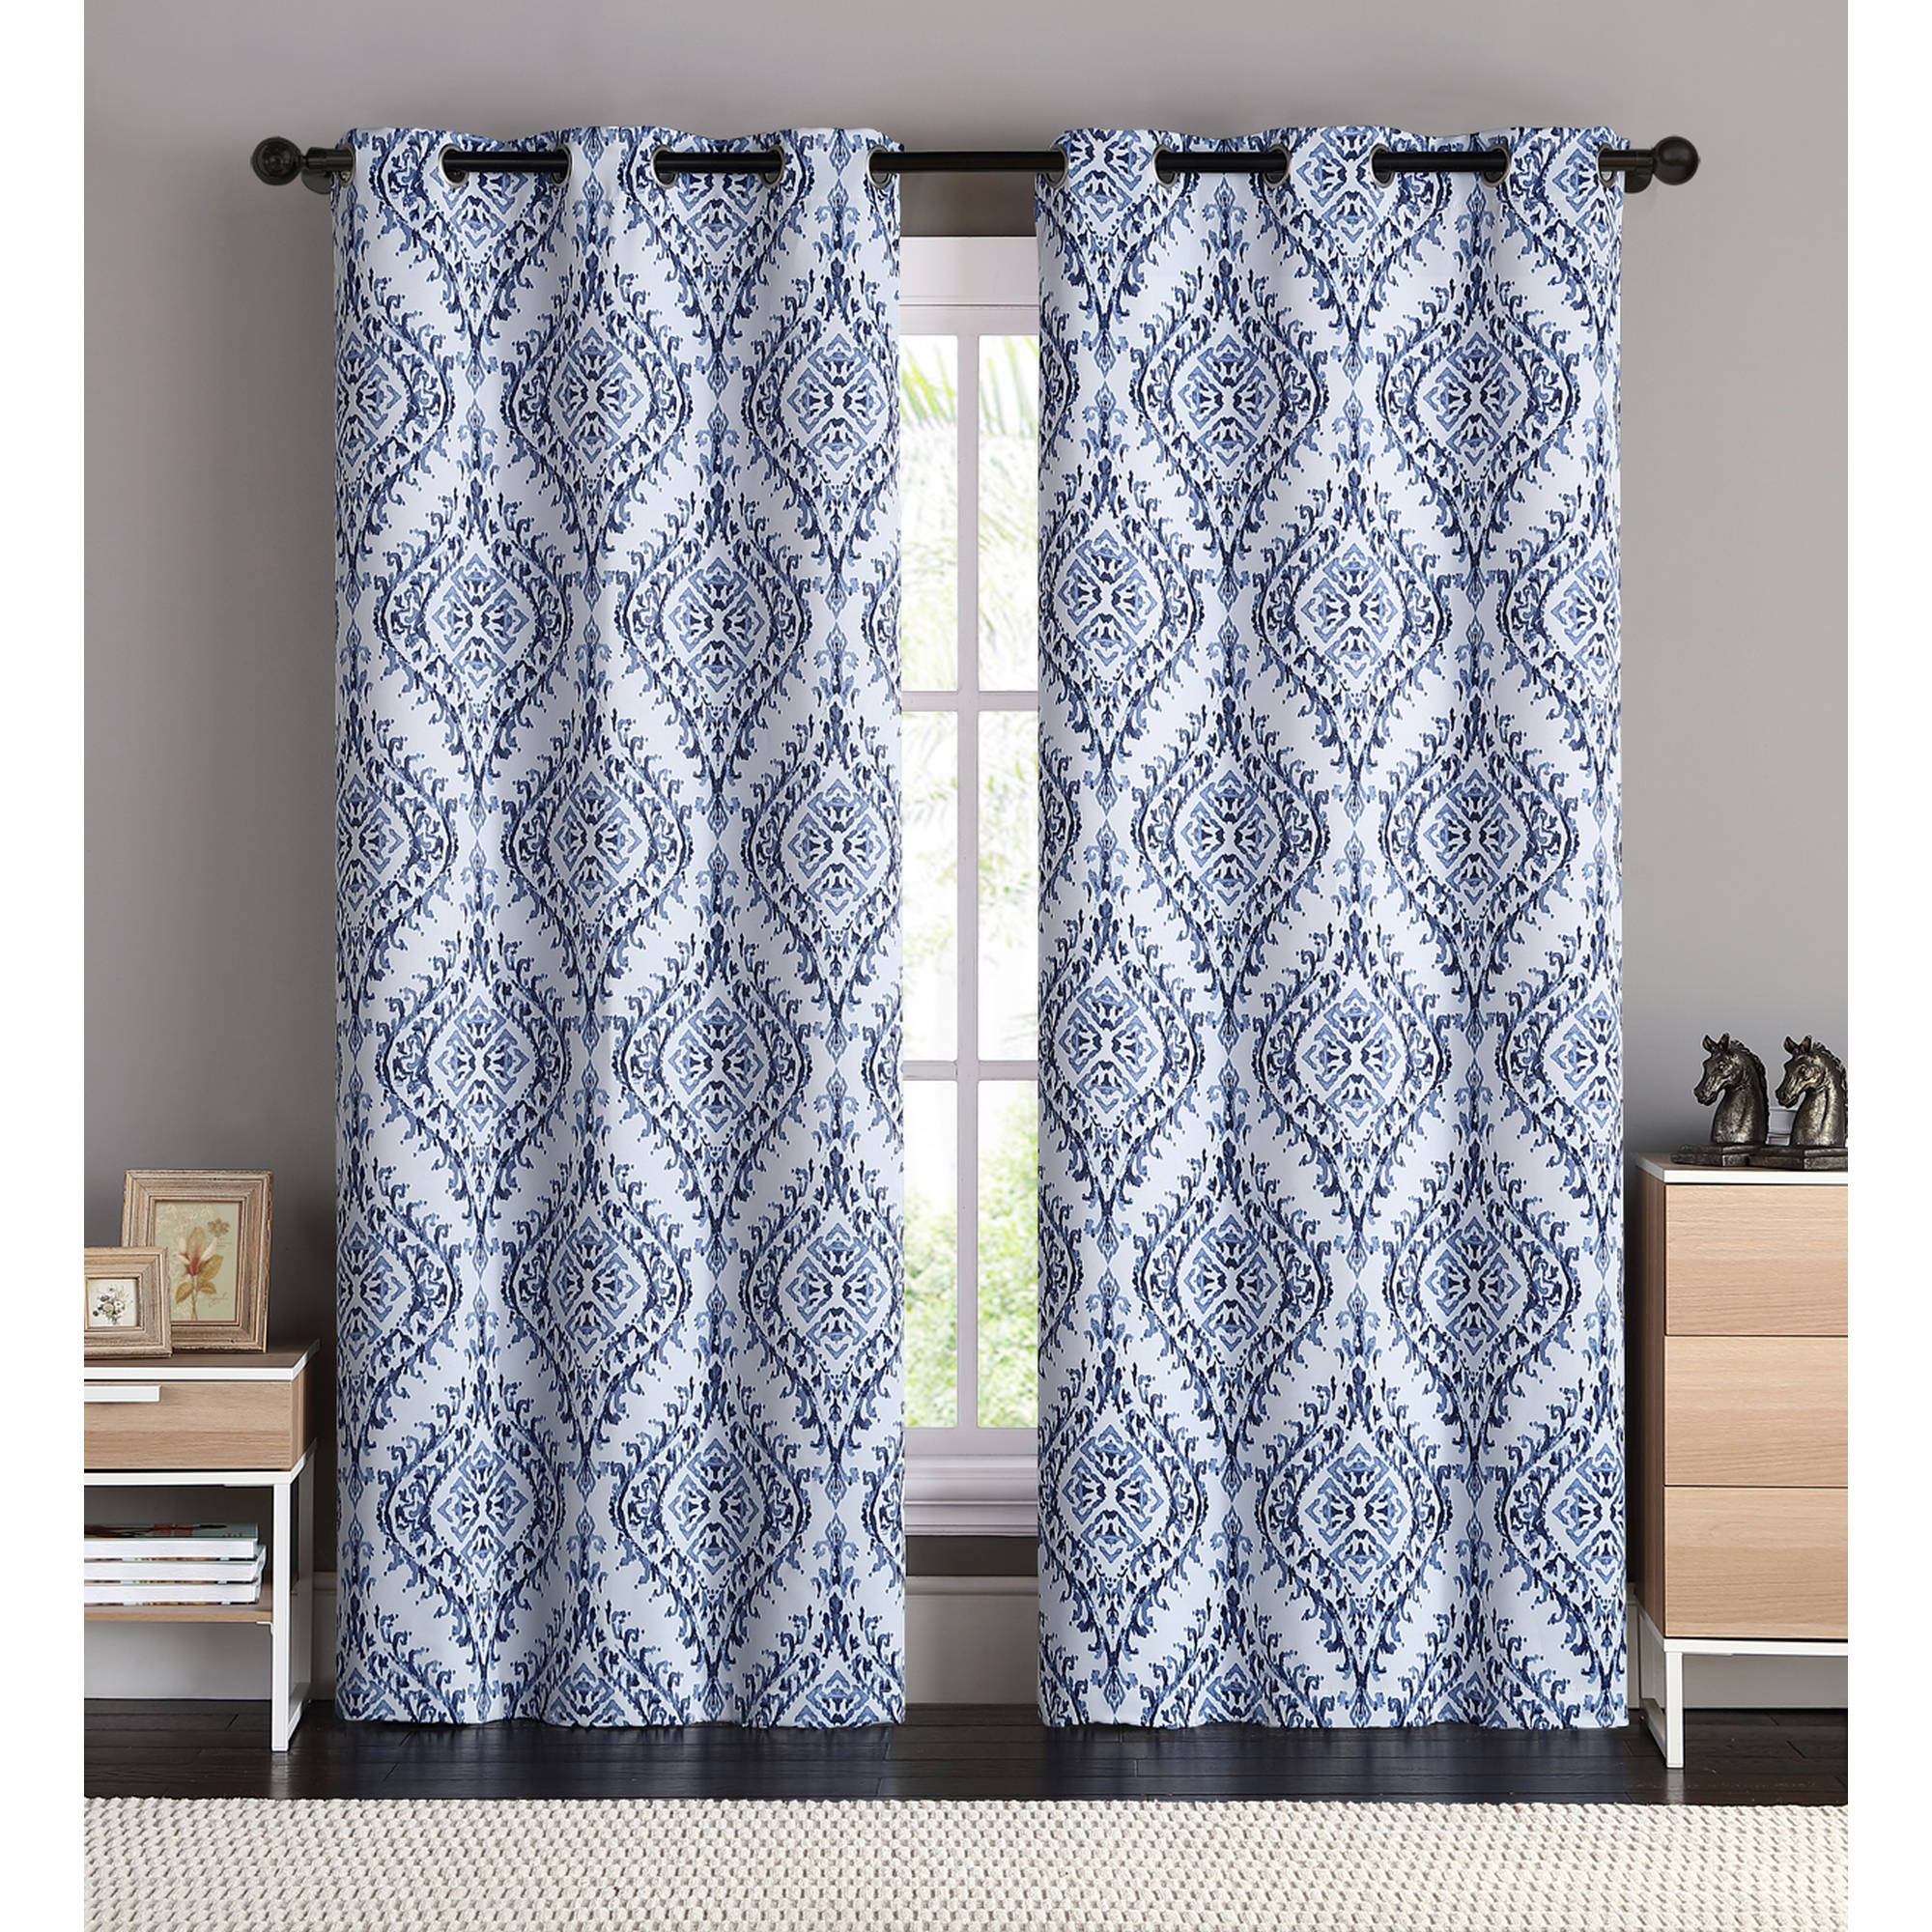 VCNY Home London Damask Printed Blackout Grommet Top Window Curtain Panel - Set of Two, Multiple Sizes and Colors Available